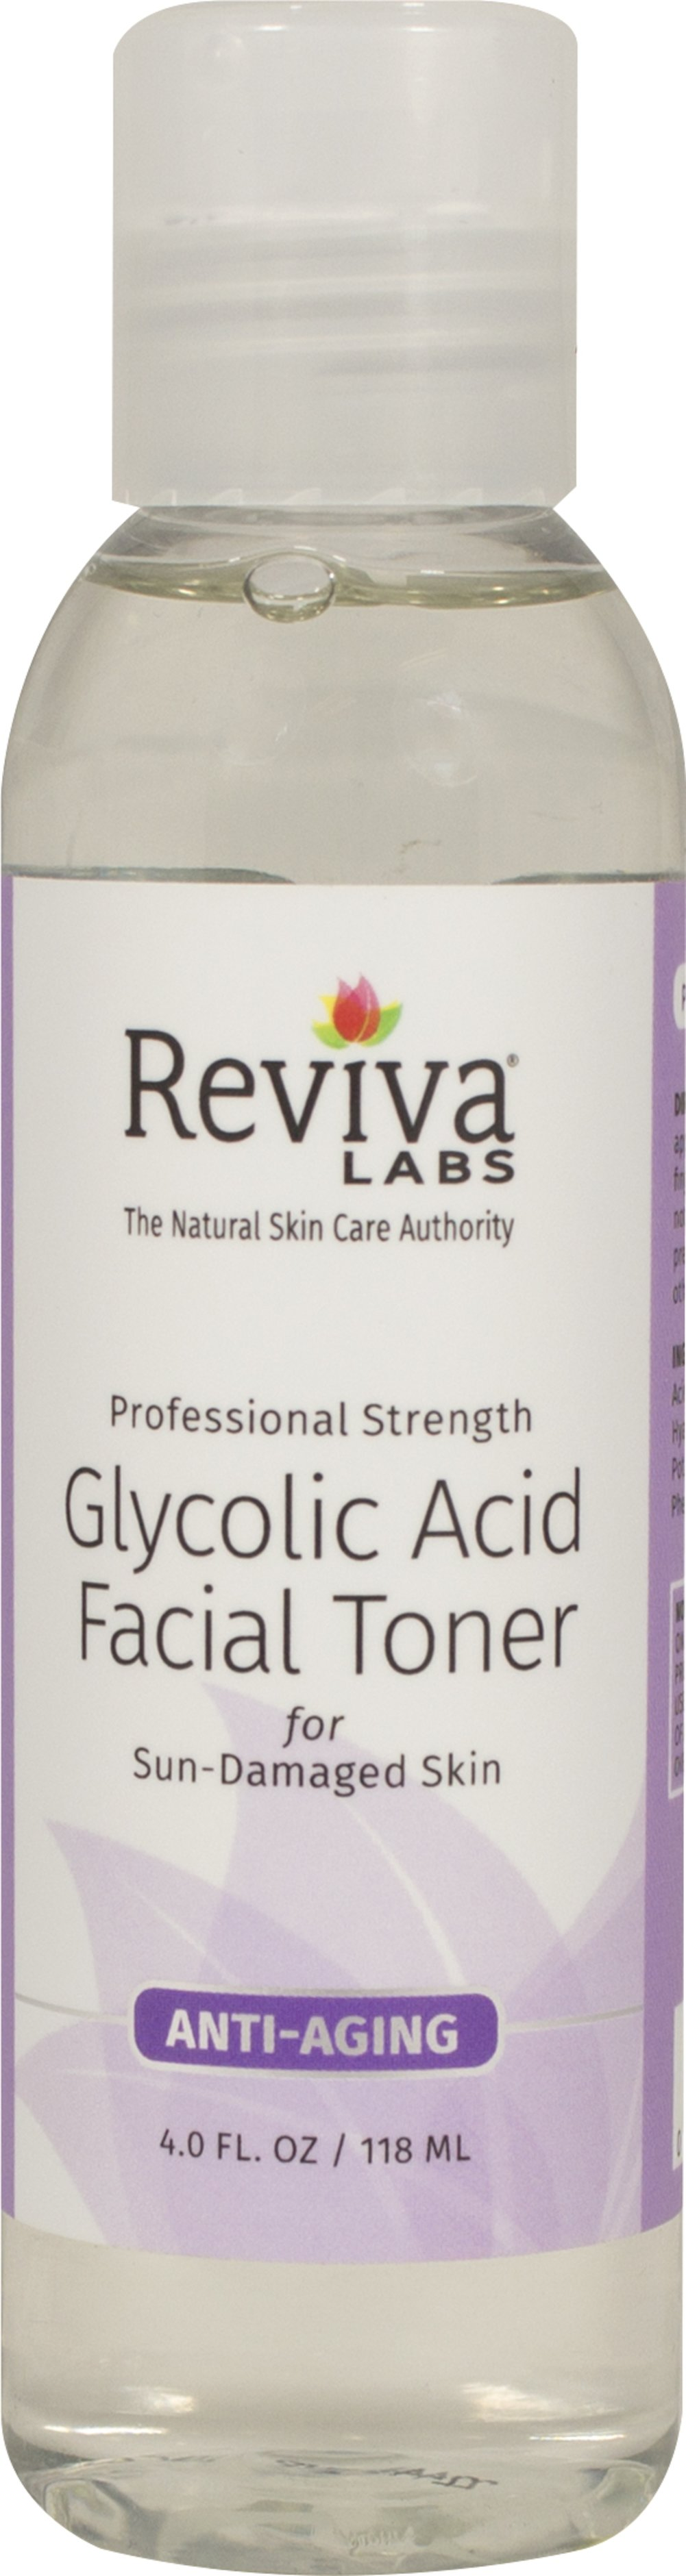 Glycolic Acid Facial Toner <p><strong>From the Manufacturer's Label:</strong></p><p>Glycolic Acid Facial Toner is manufactured by Reviva® Labs.</p><p>- No Animal Ingredients</p><p>- No Animal Testing</p> 4 fl oz Liquid  $7.49